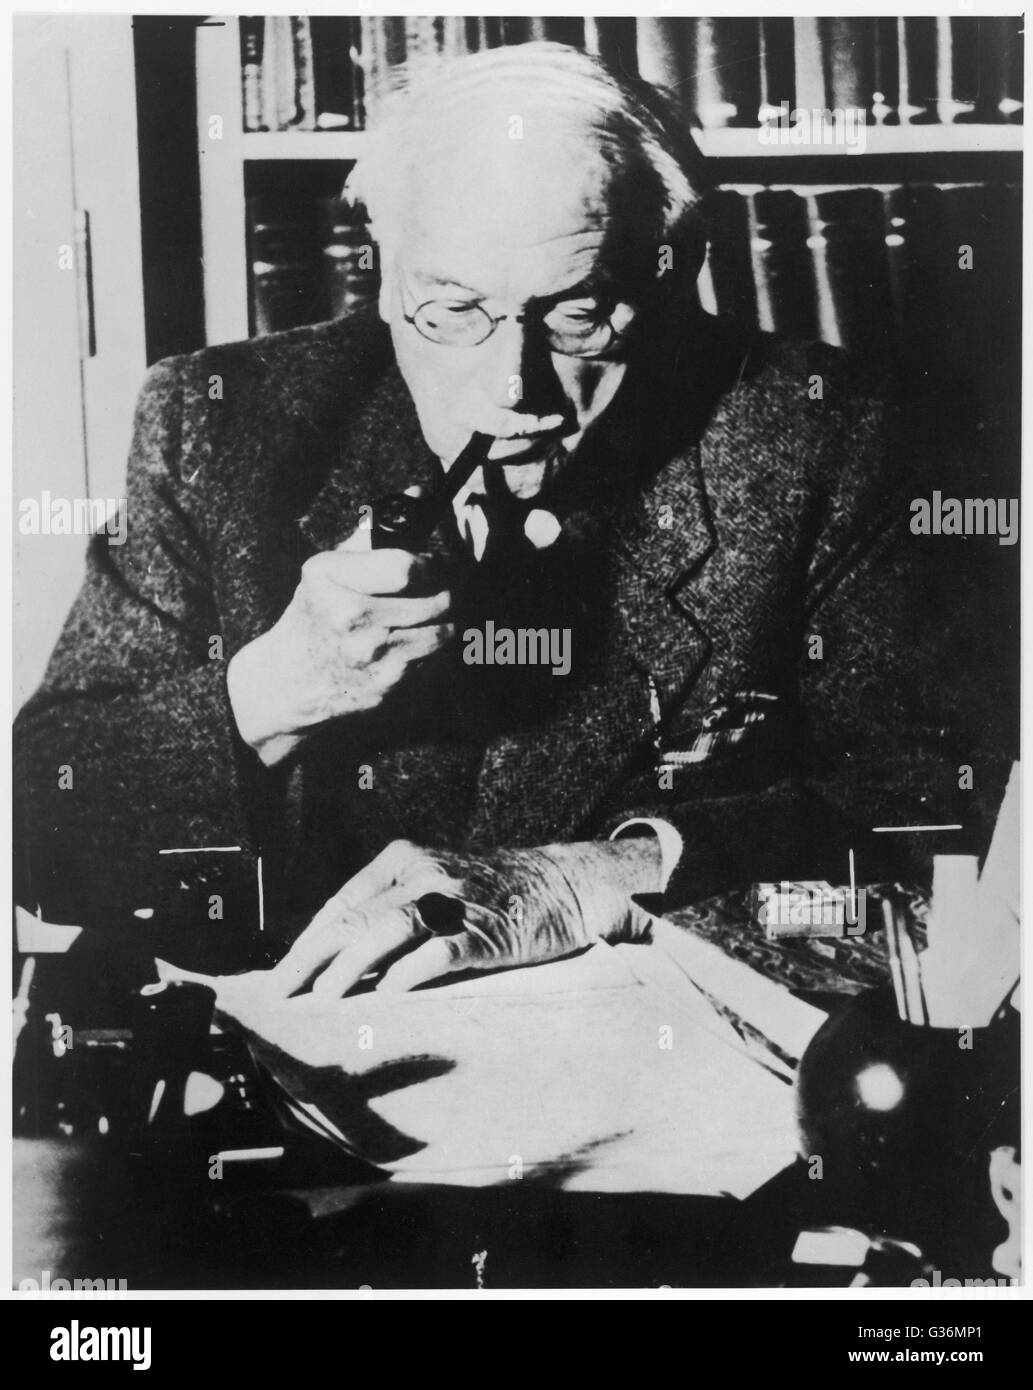 Carl Gustav Jung (1875-1961) Swiss psychologist at his desk - Stock Image